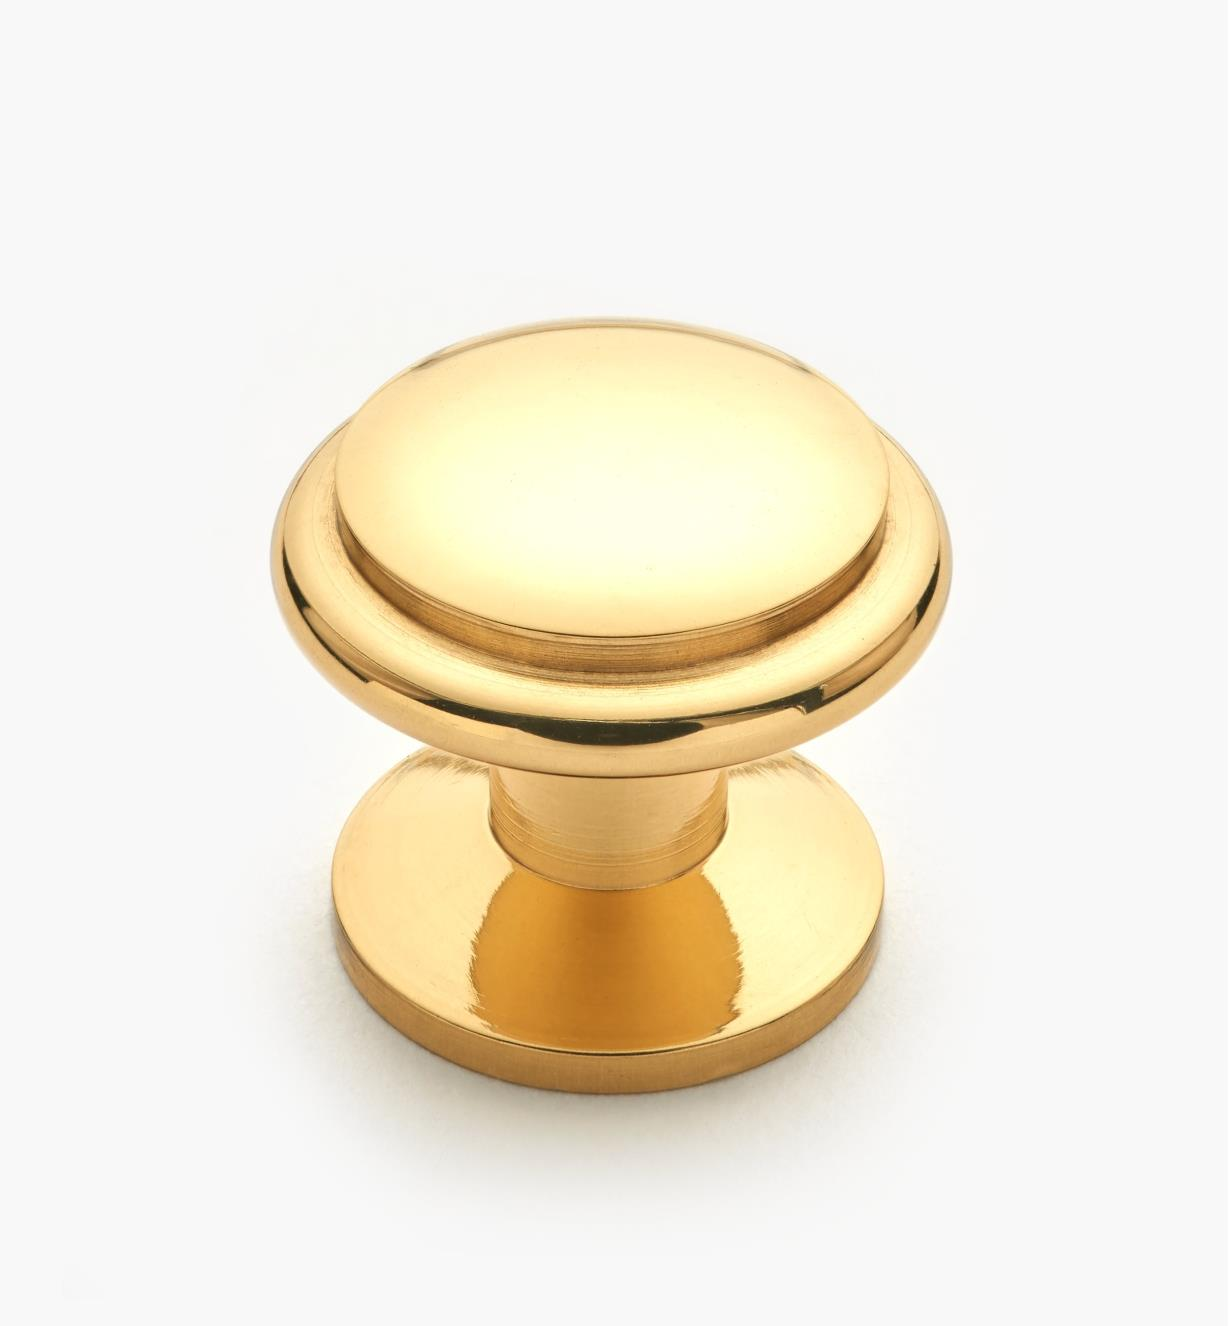 01W1331 - 20mm x 18mm Small Brass Knob